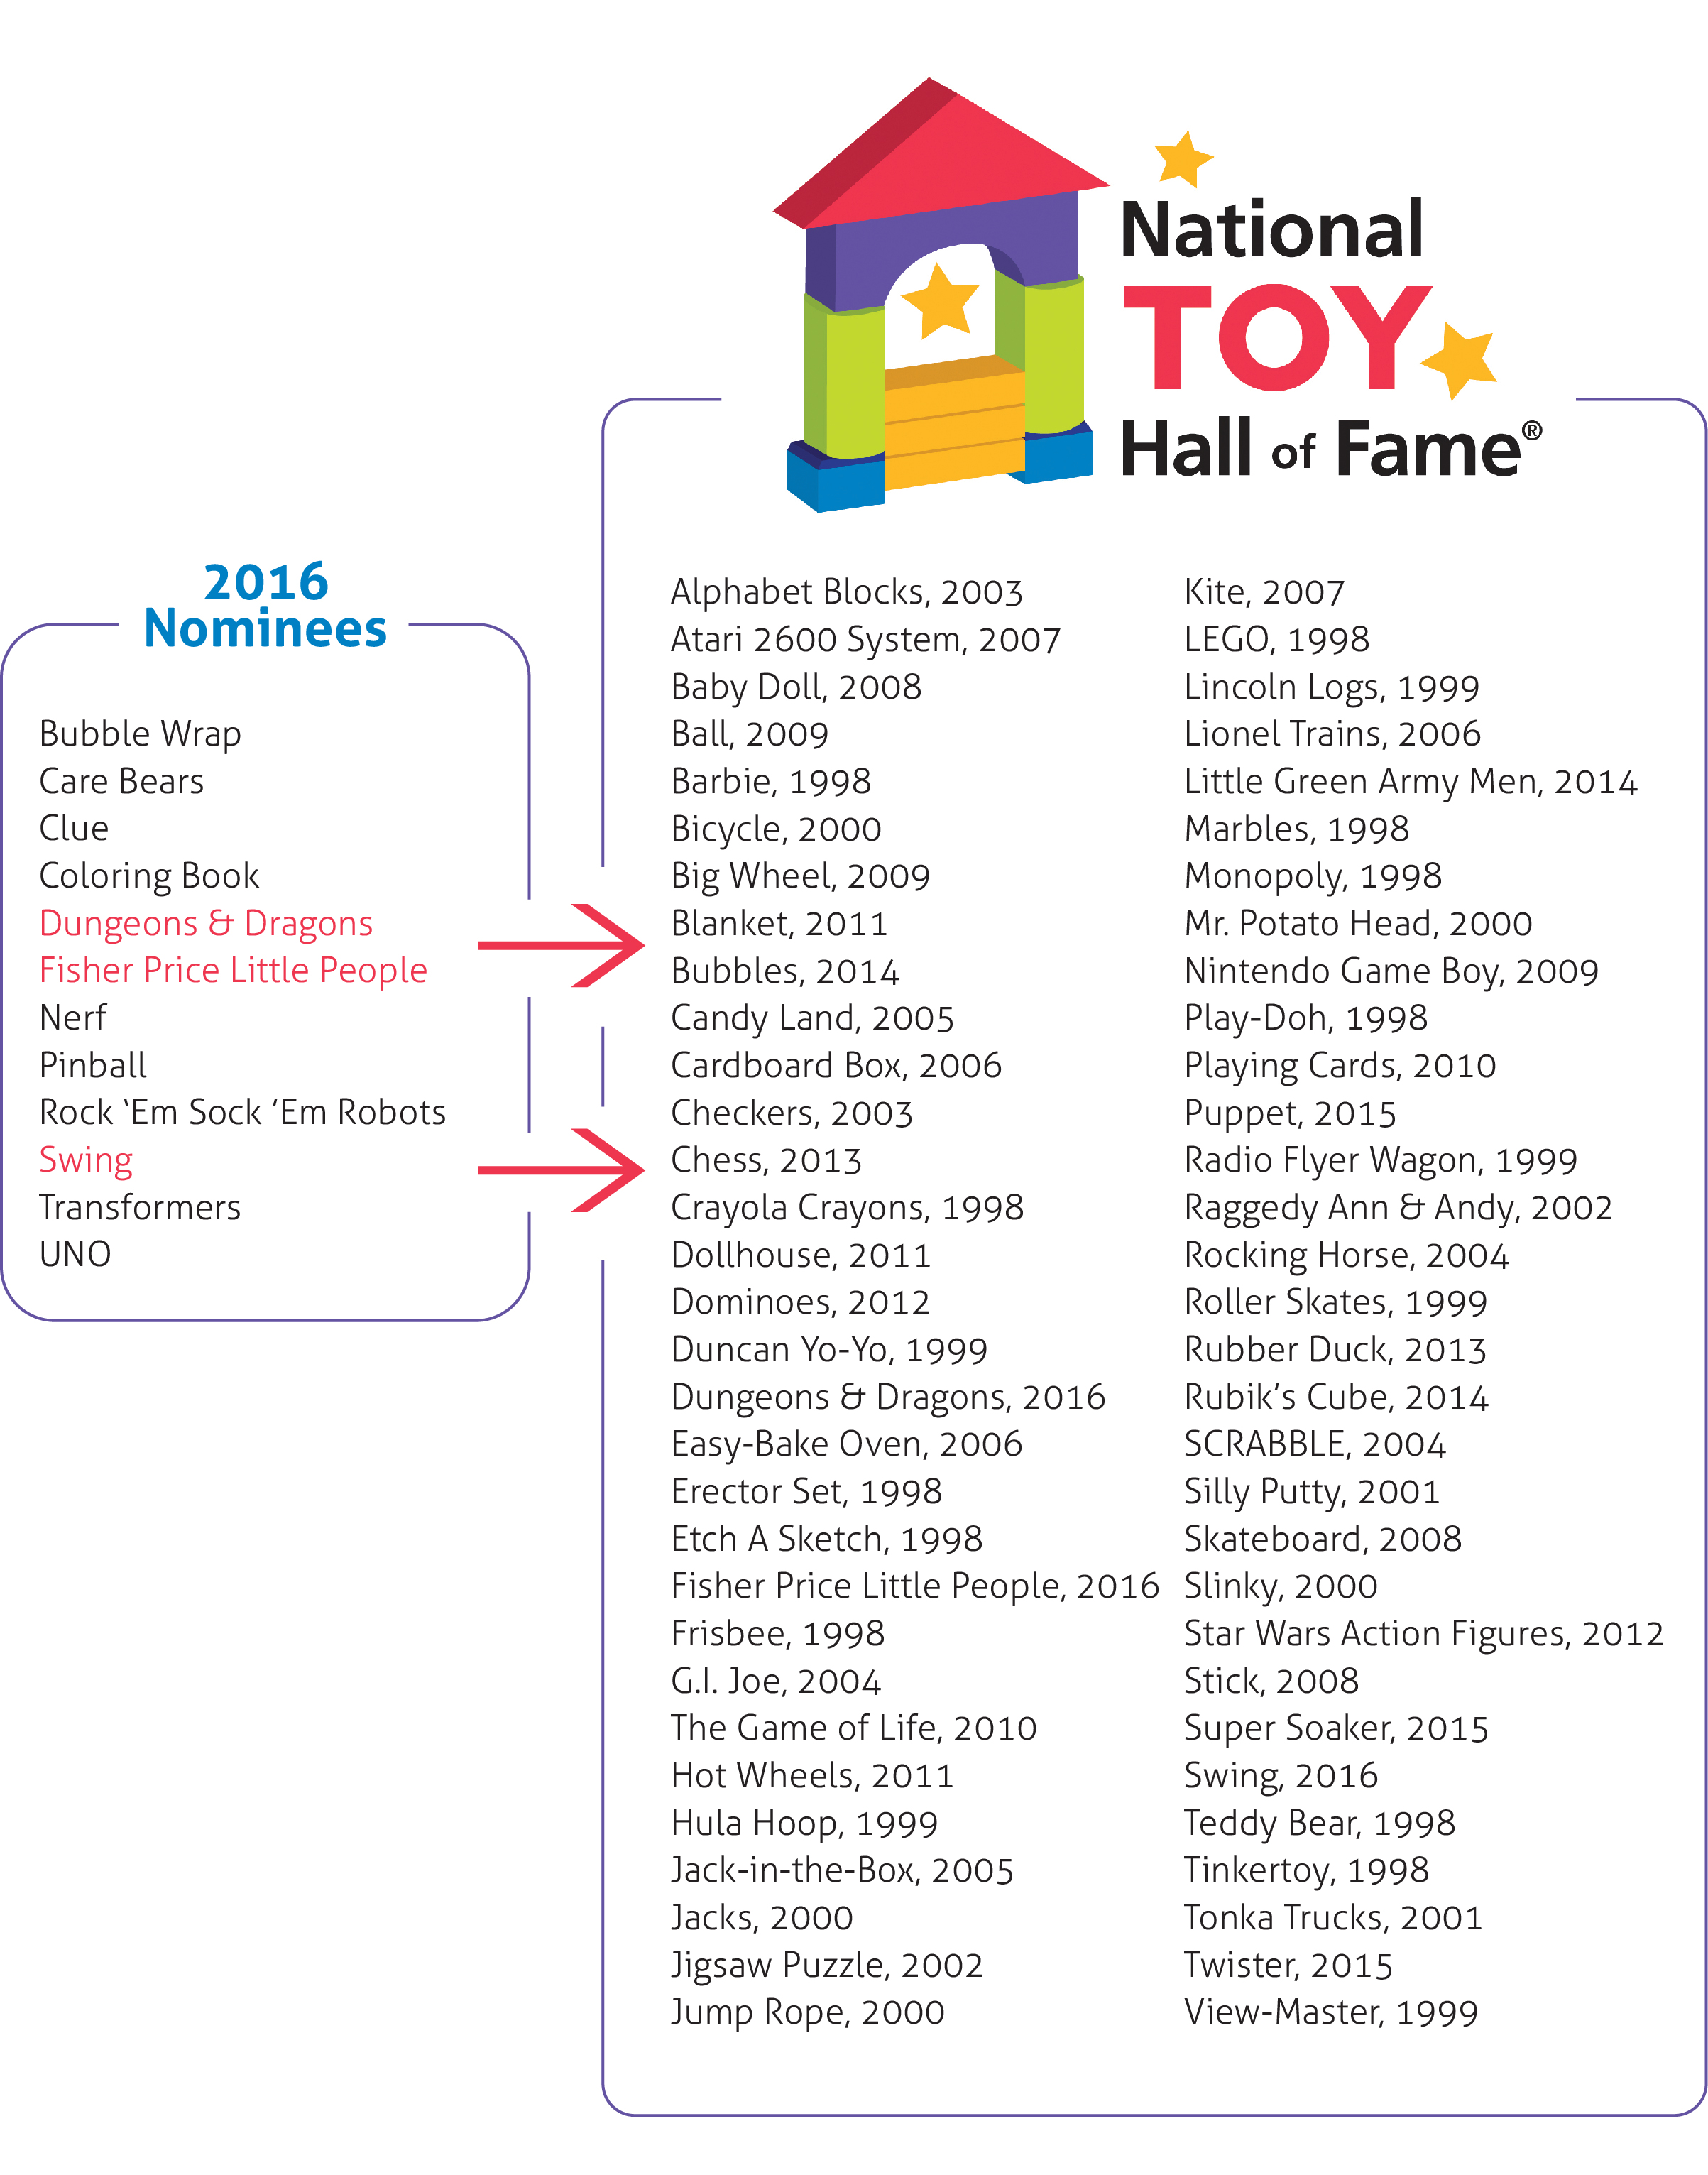 2016-national-toy-hall-of-fame-results-image